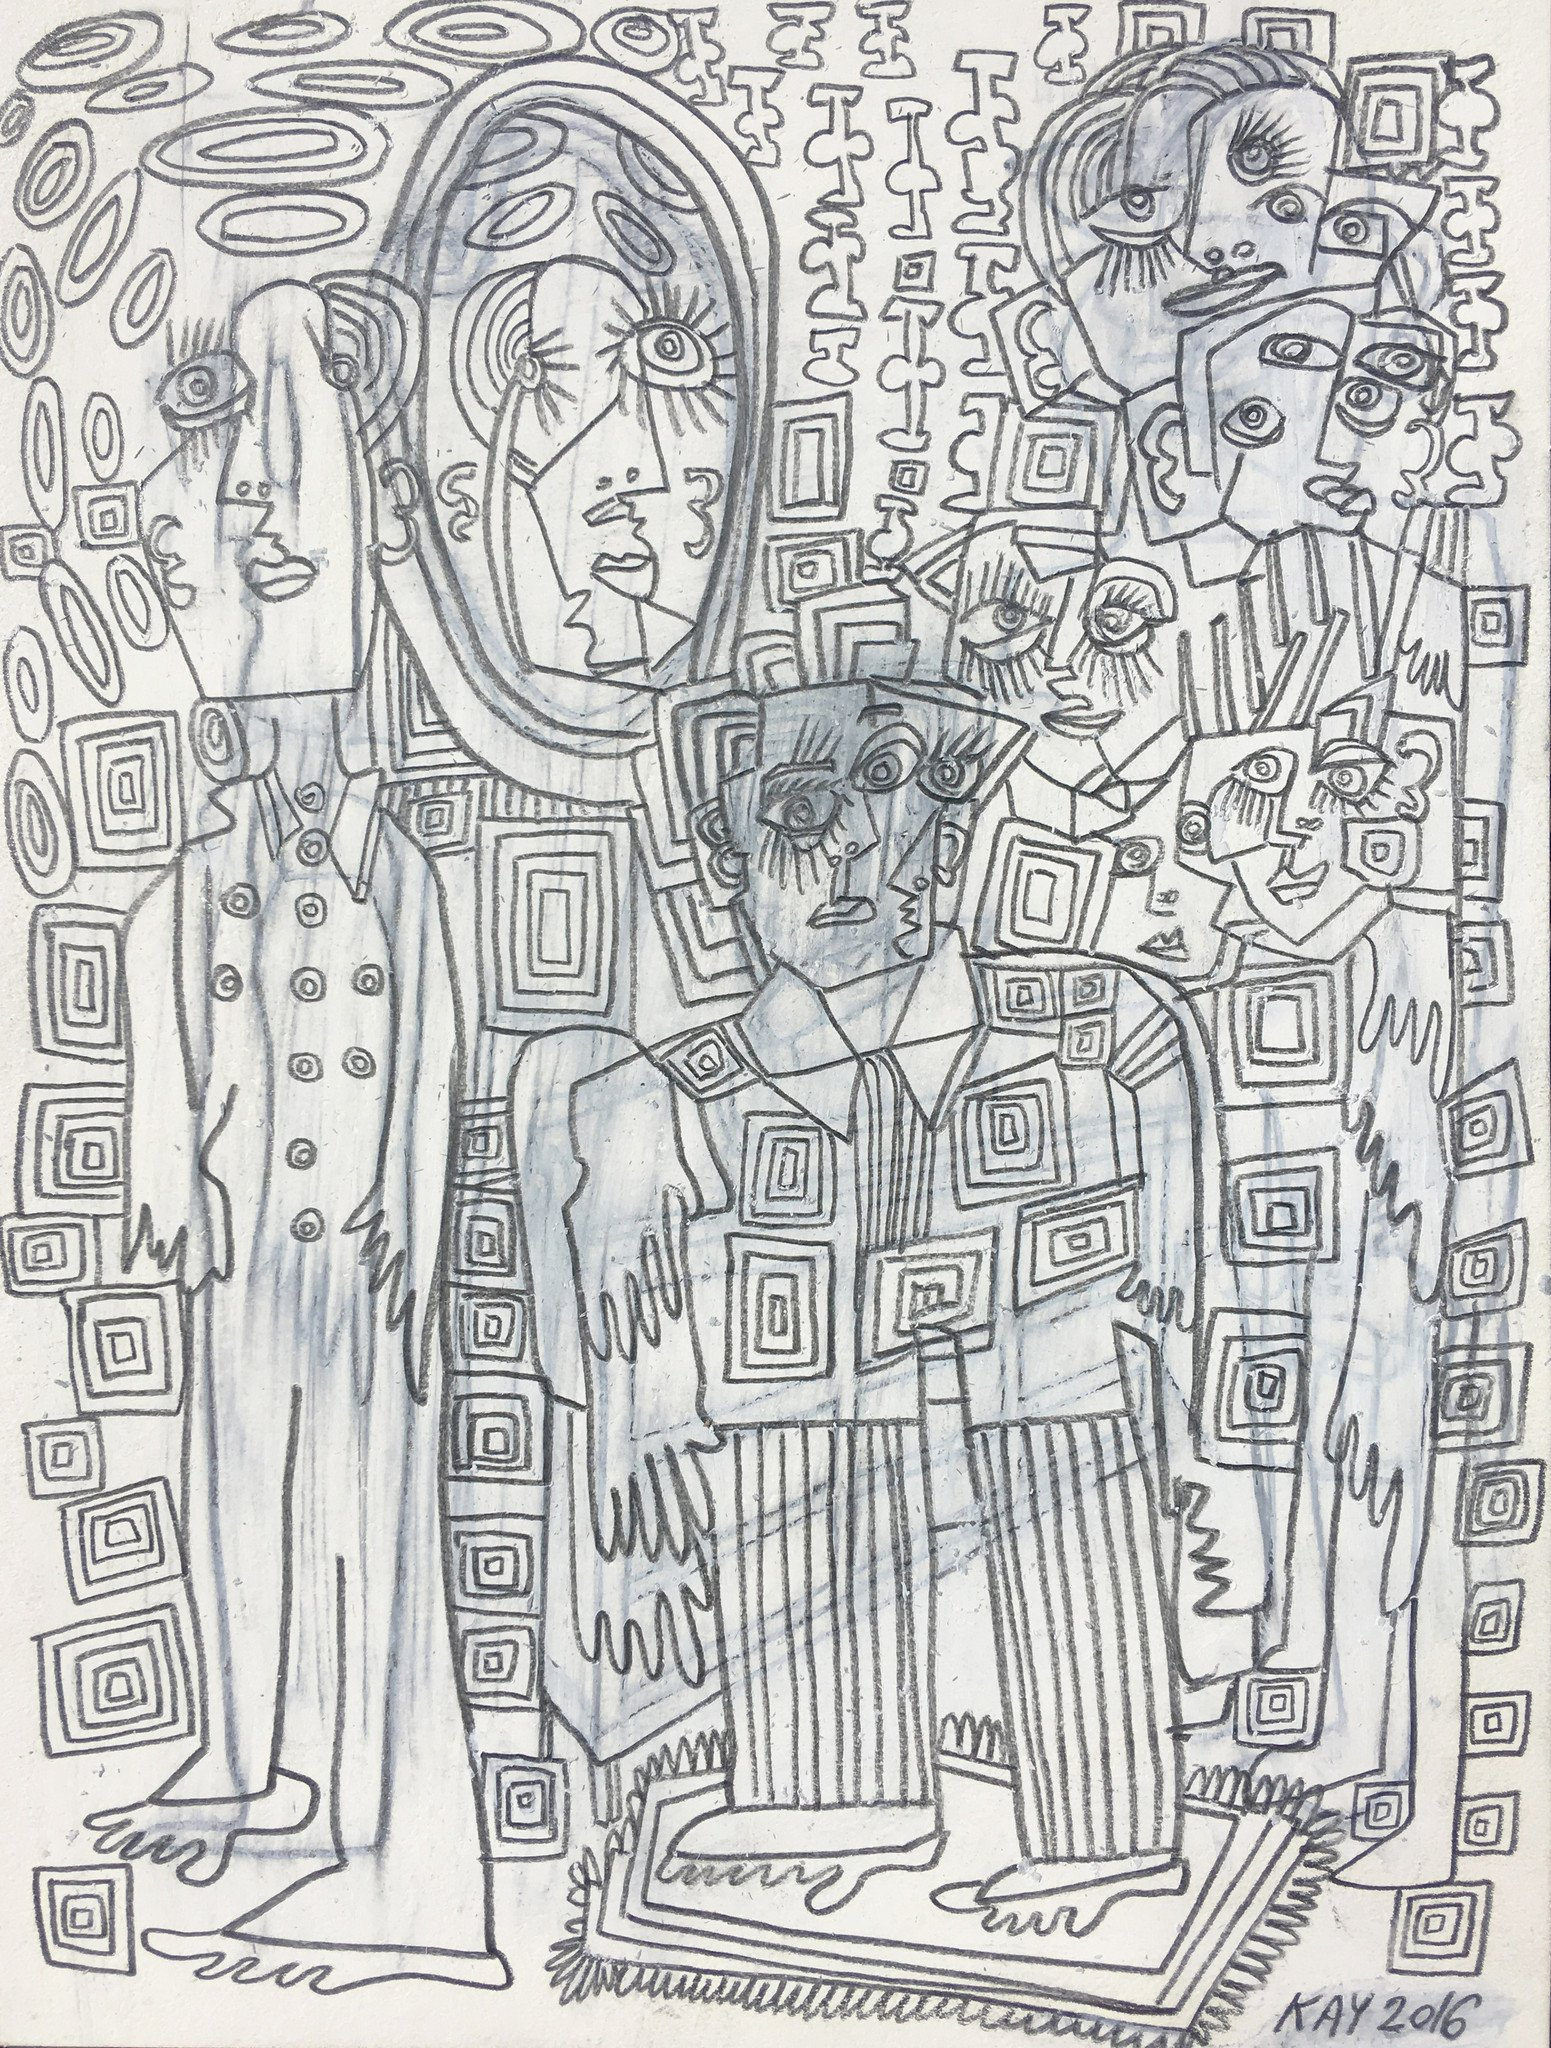 OIL DRAWING 35 - WILL KAY$350This drawing is from my series of oil and pencil on paper. Common themes mused upon are figures, animals, plants, music, asymmetry and rhythm.description: oil and pencil on paper, 6